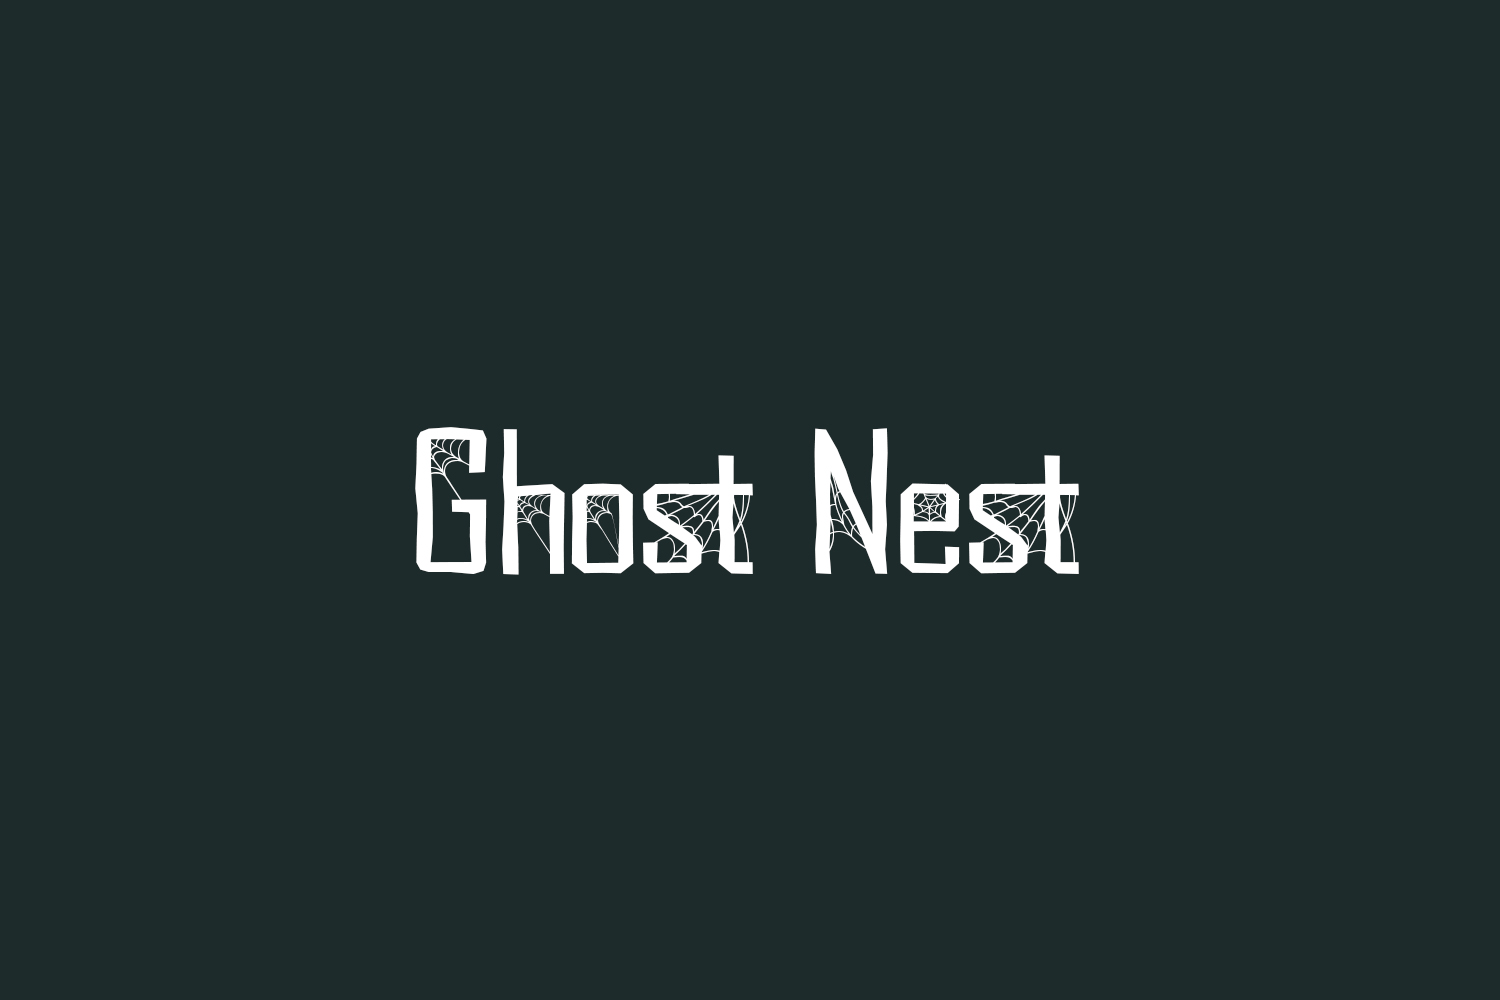 Ghost Nest Free Font